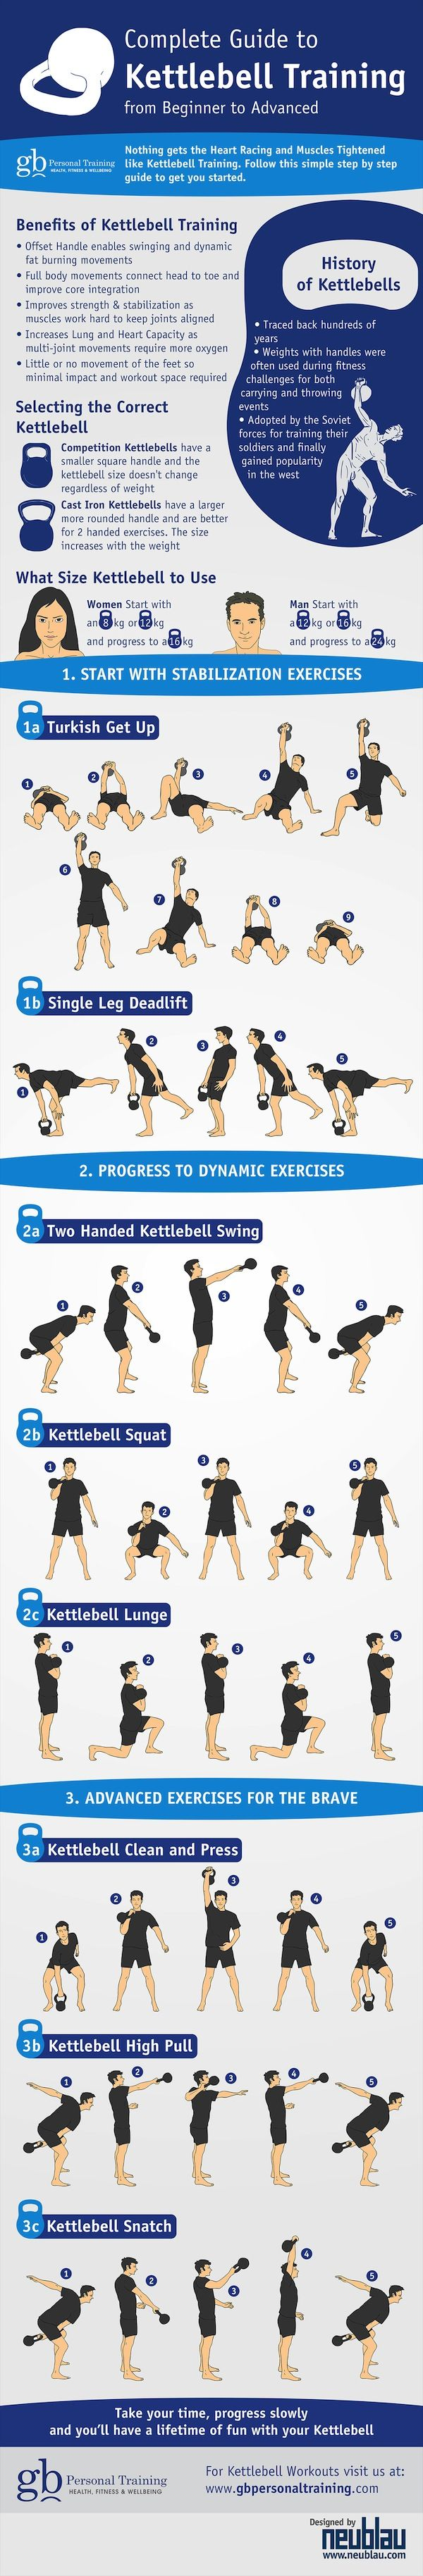 Complete Guide to Kettlebell Training Infographic